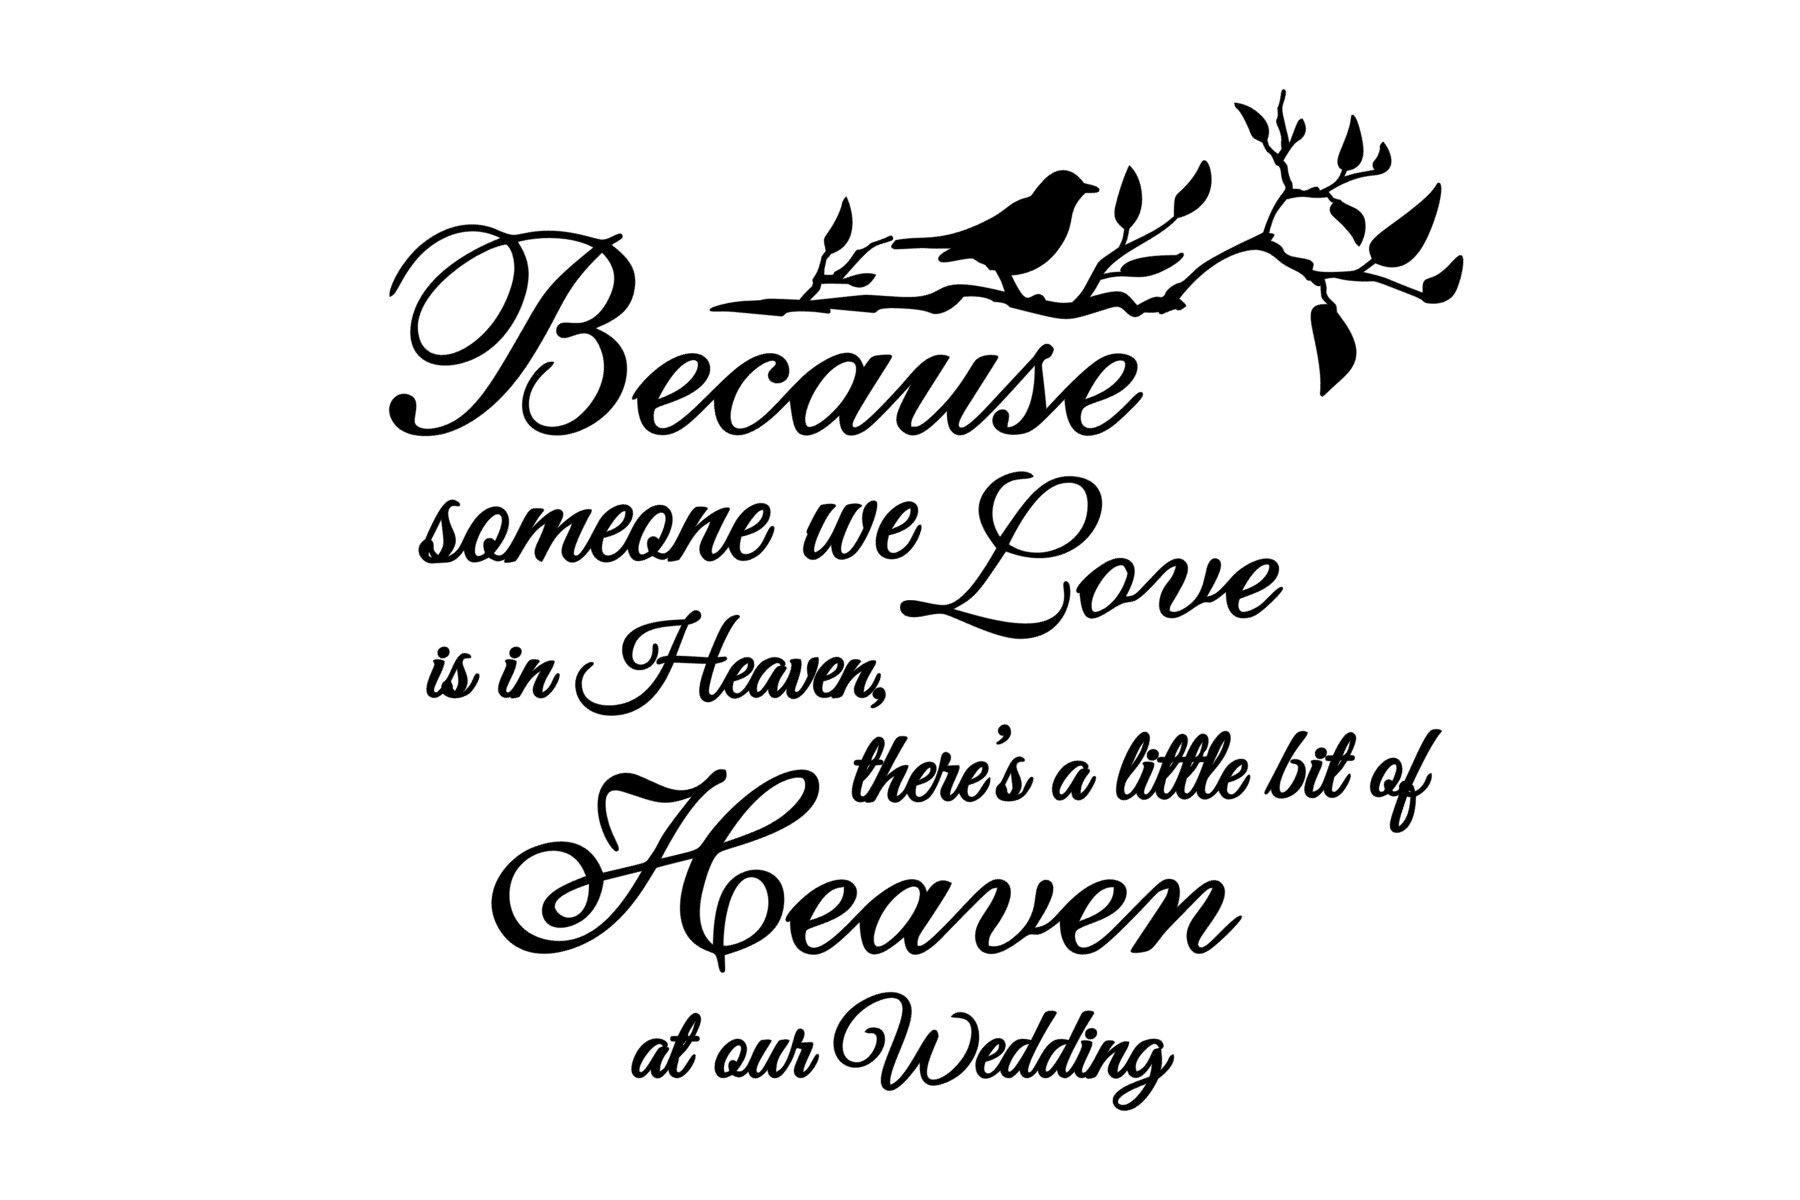 733+ Because Someone We Love Is In Heaven Svg Free by CalaDesign